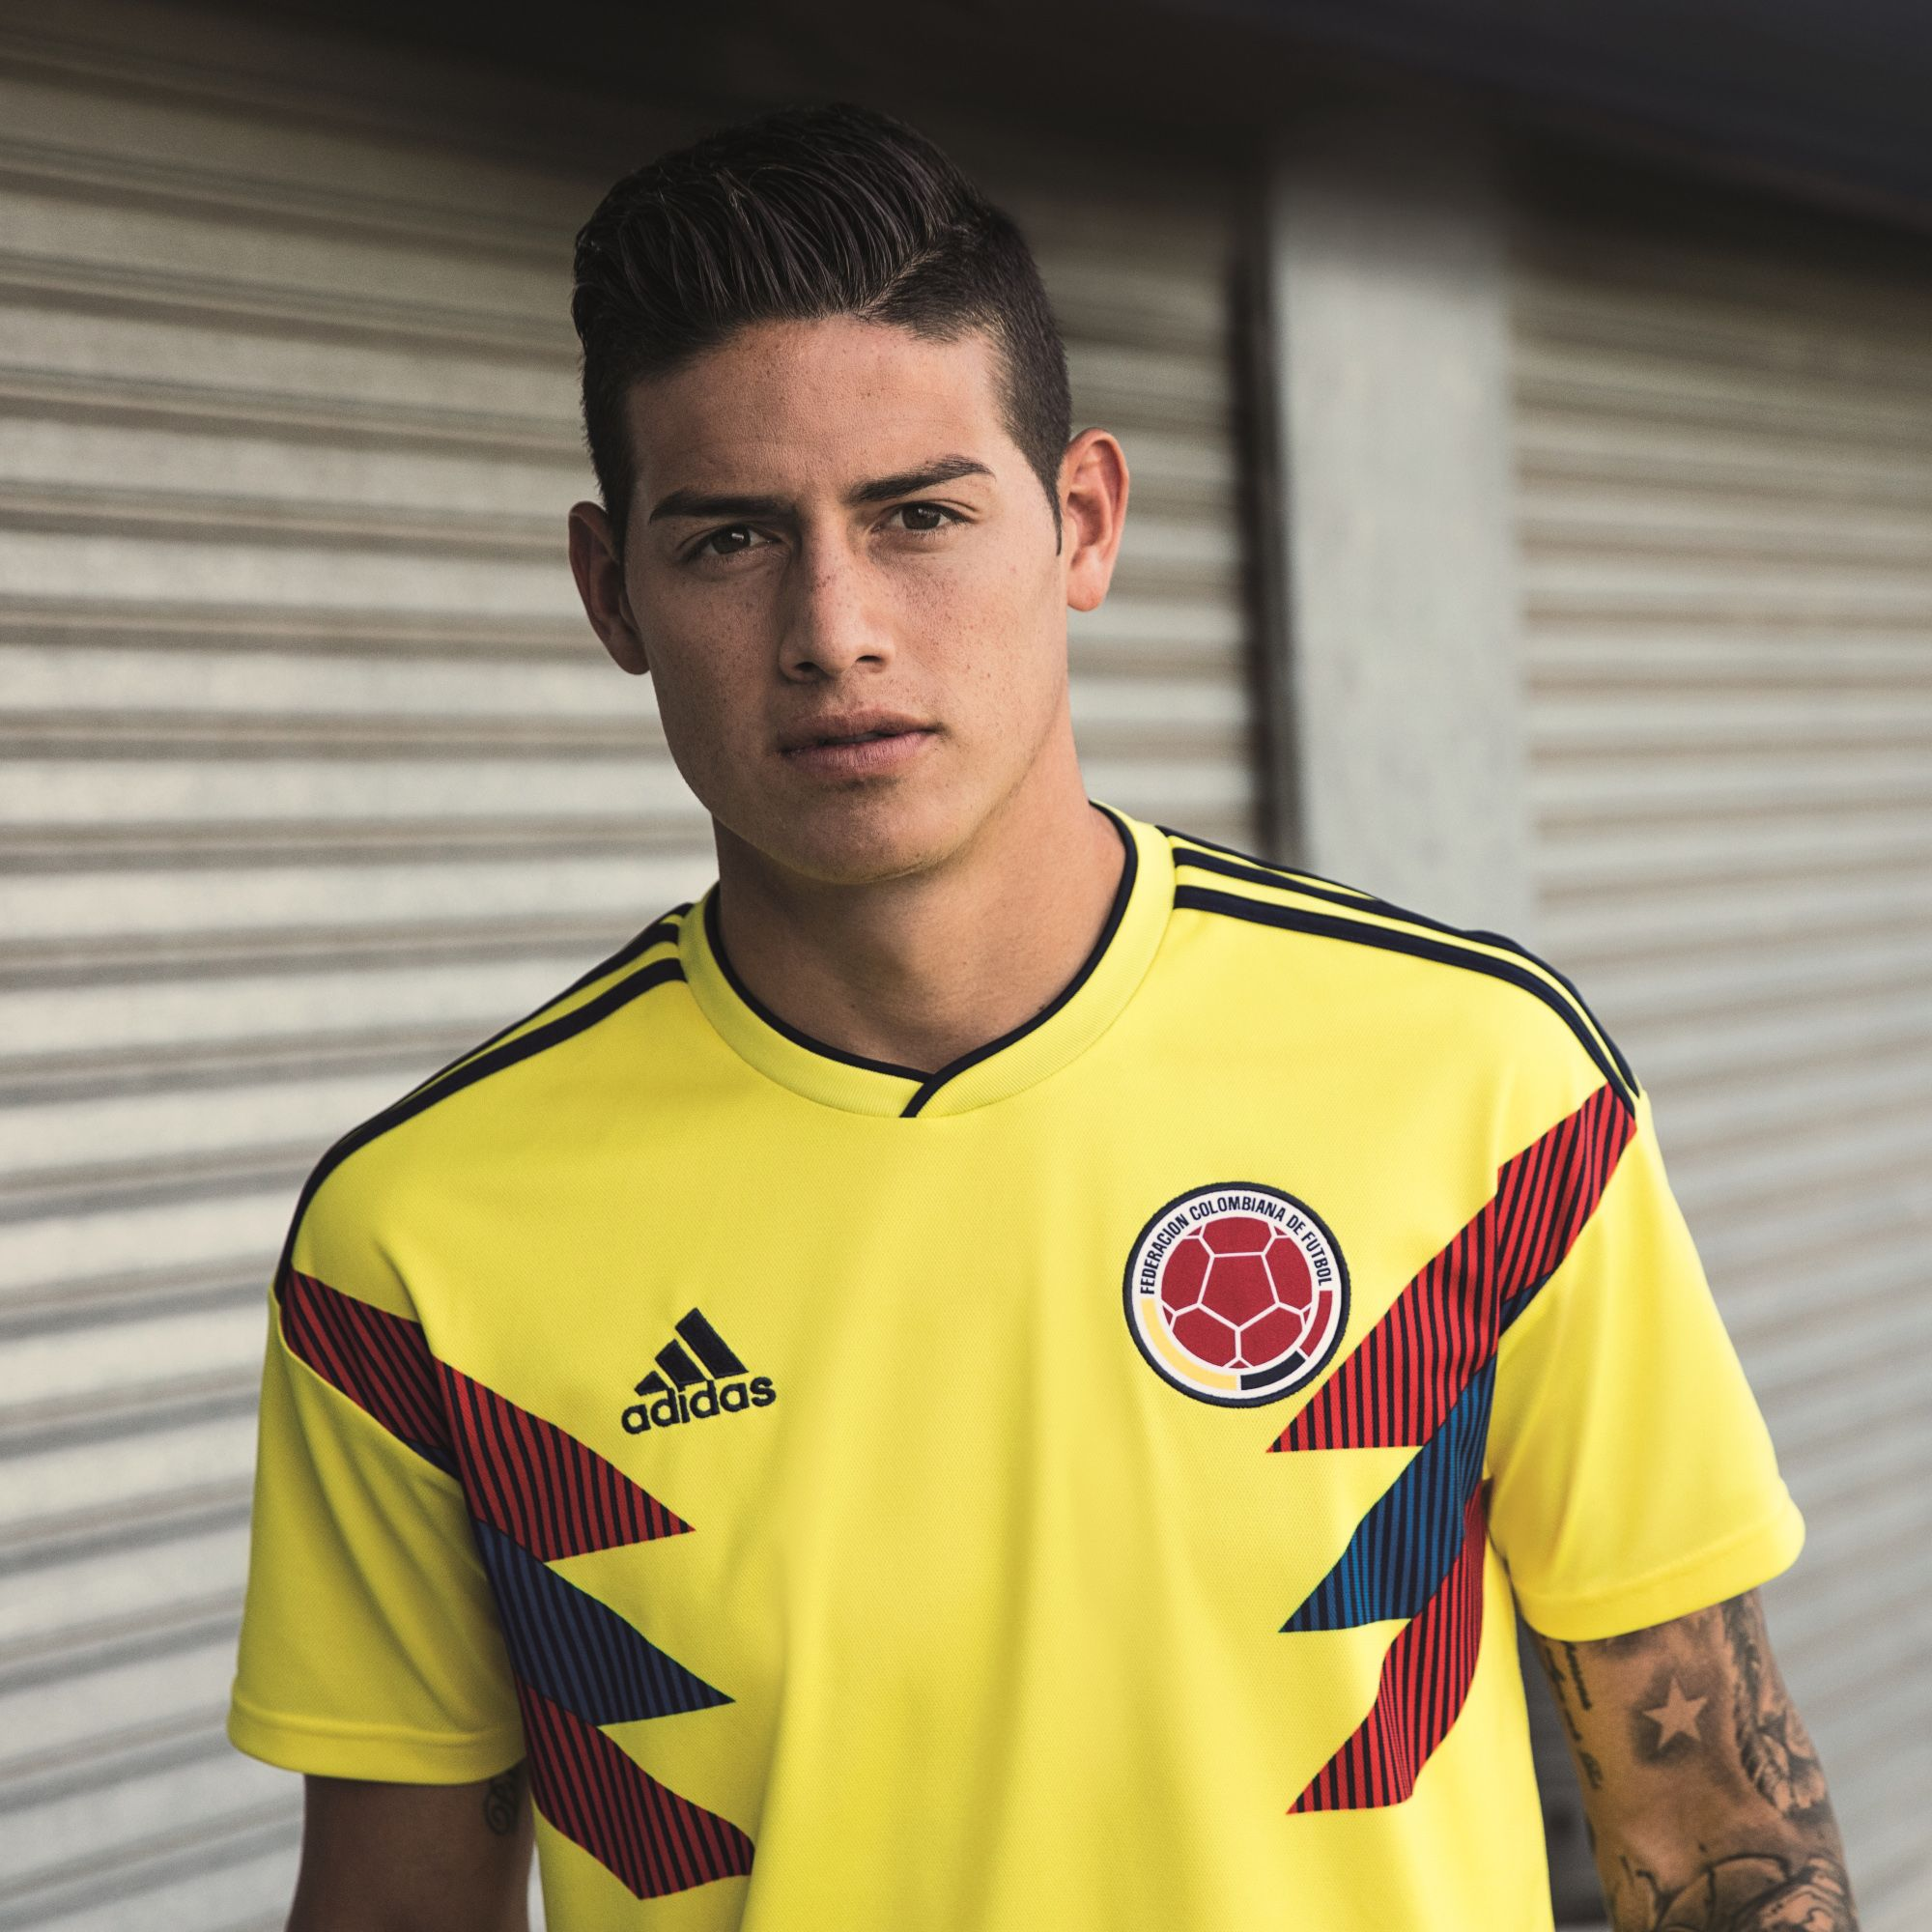 release date 9d4b1 43c72 James Rodriguez in the adidas 2018 Colombia home jersey ...